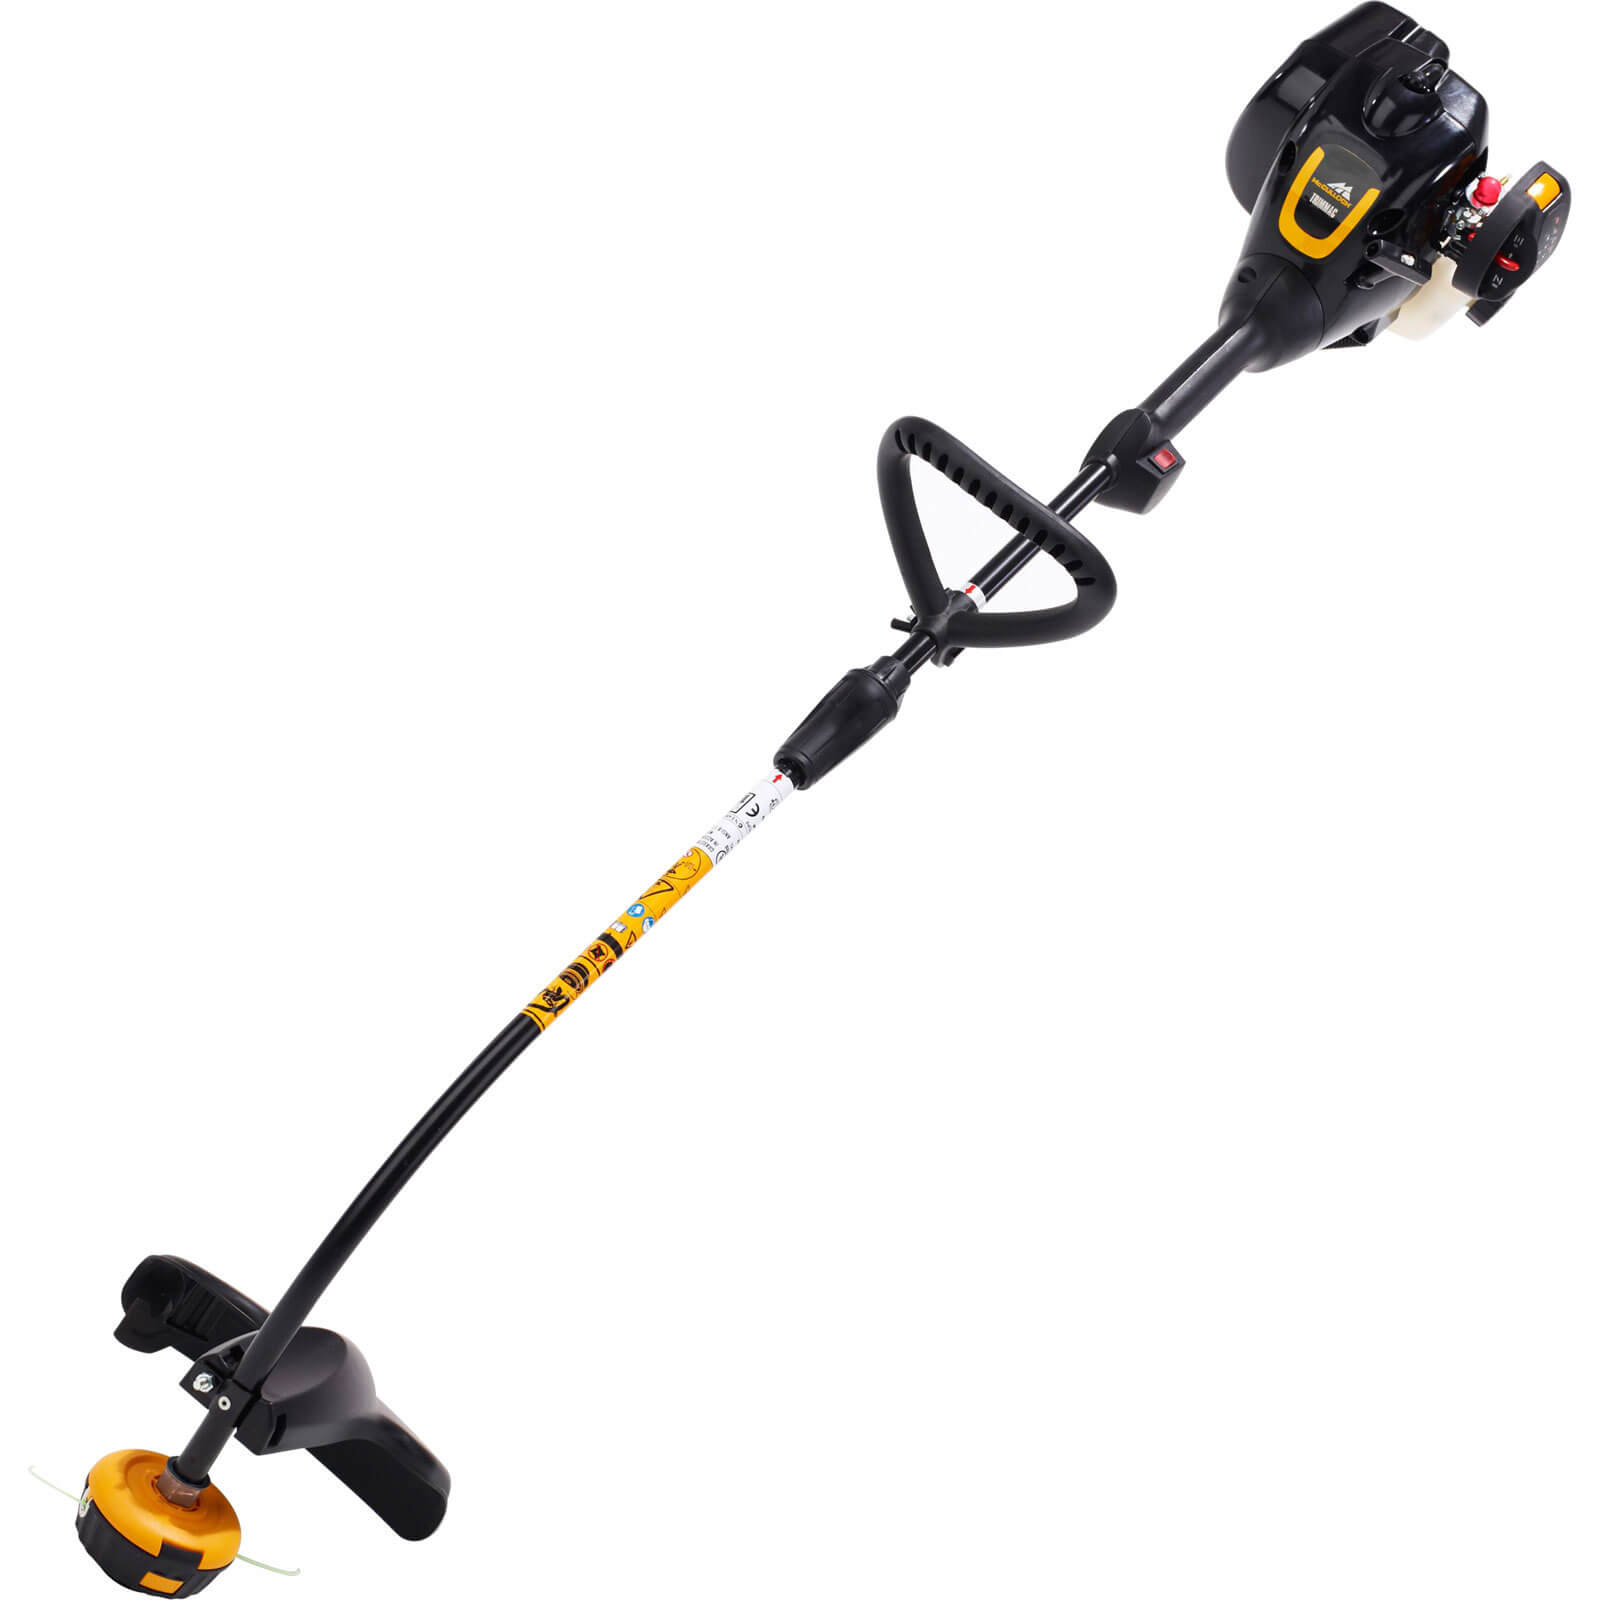 mcculloch trimmac petrol grass trimmer 410mm rh tooled up com Shindaiwa Hedge Trimmer Shindaiwa Hedge Trimmer